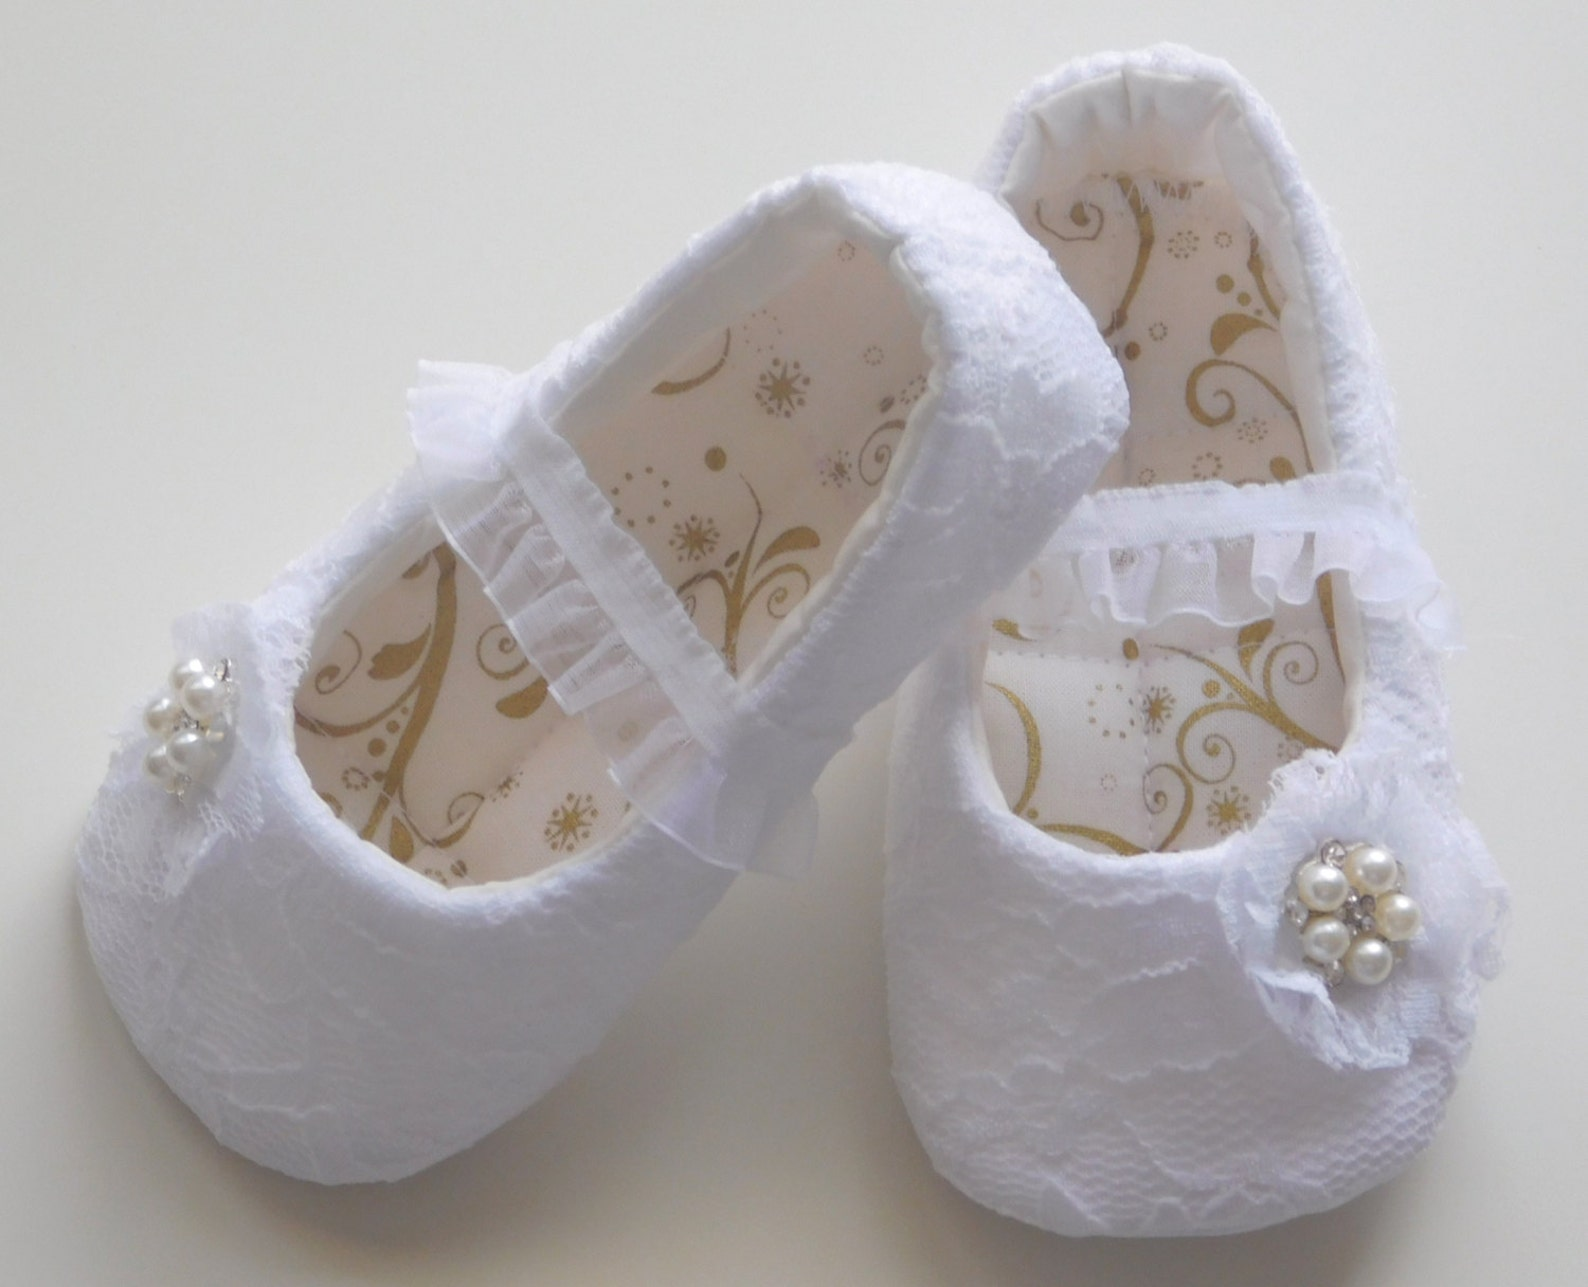 flower girl shoes girl flats christening shoes baby baptism soft sole shoes wedding flats ballet flats baby gift